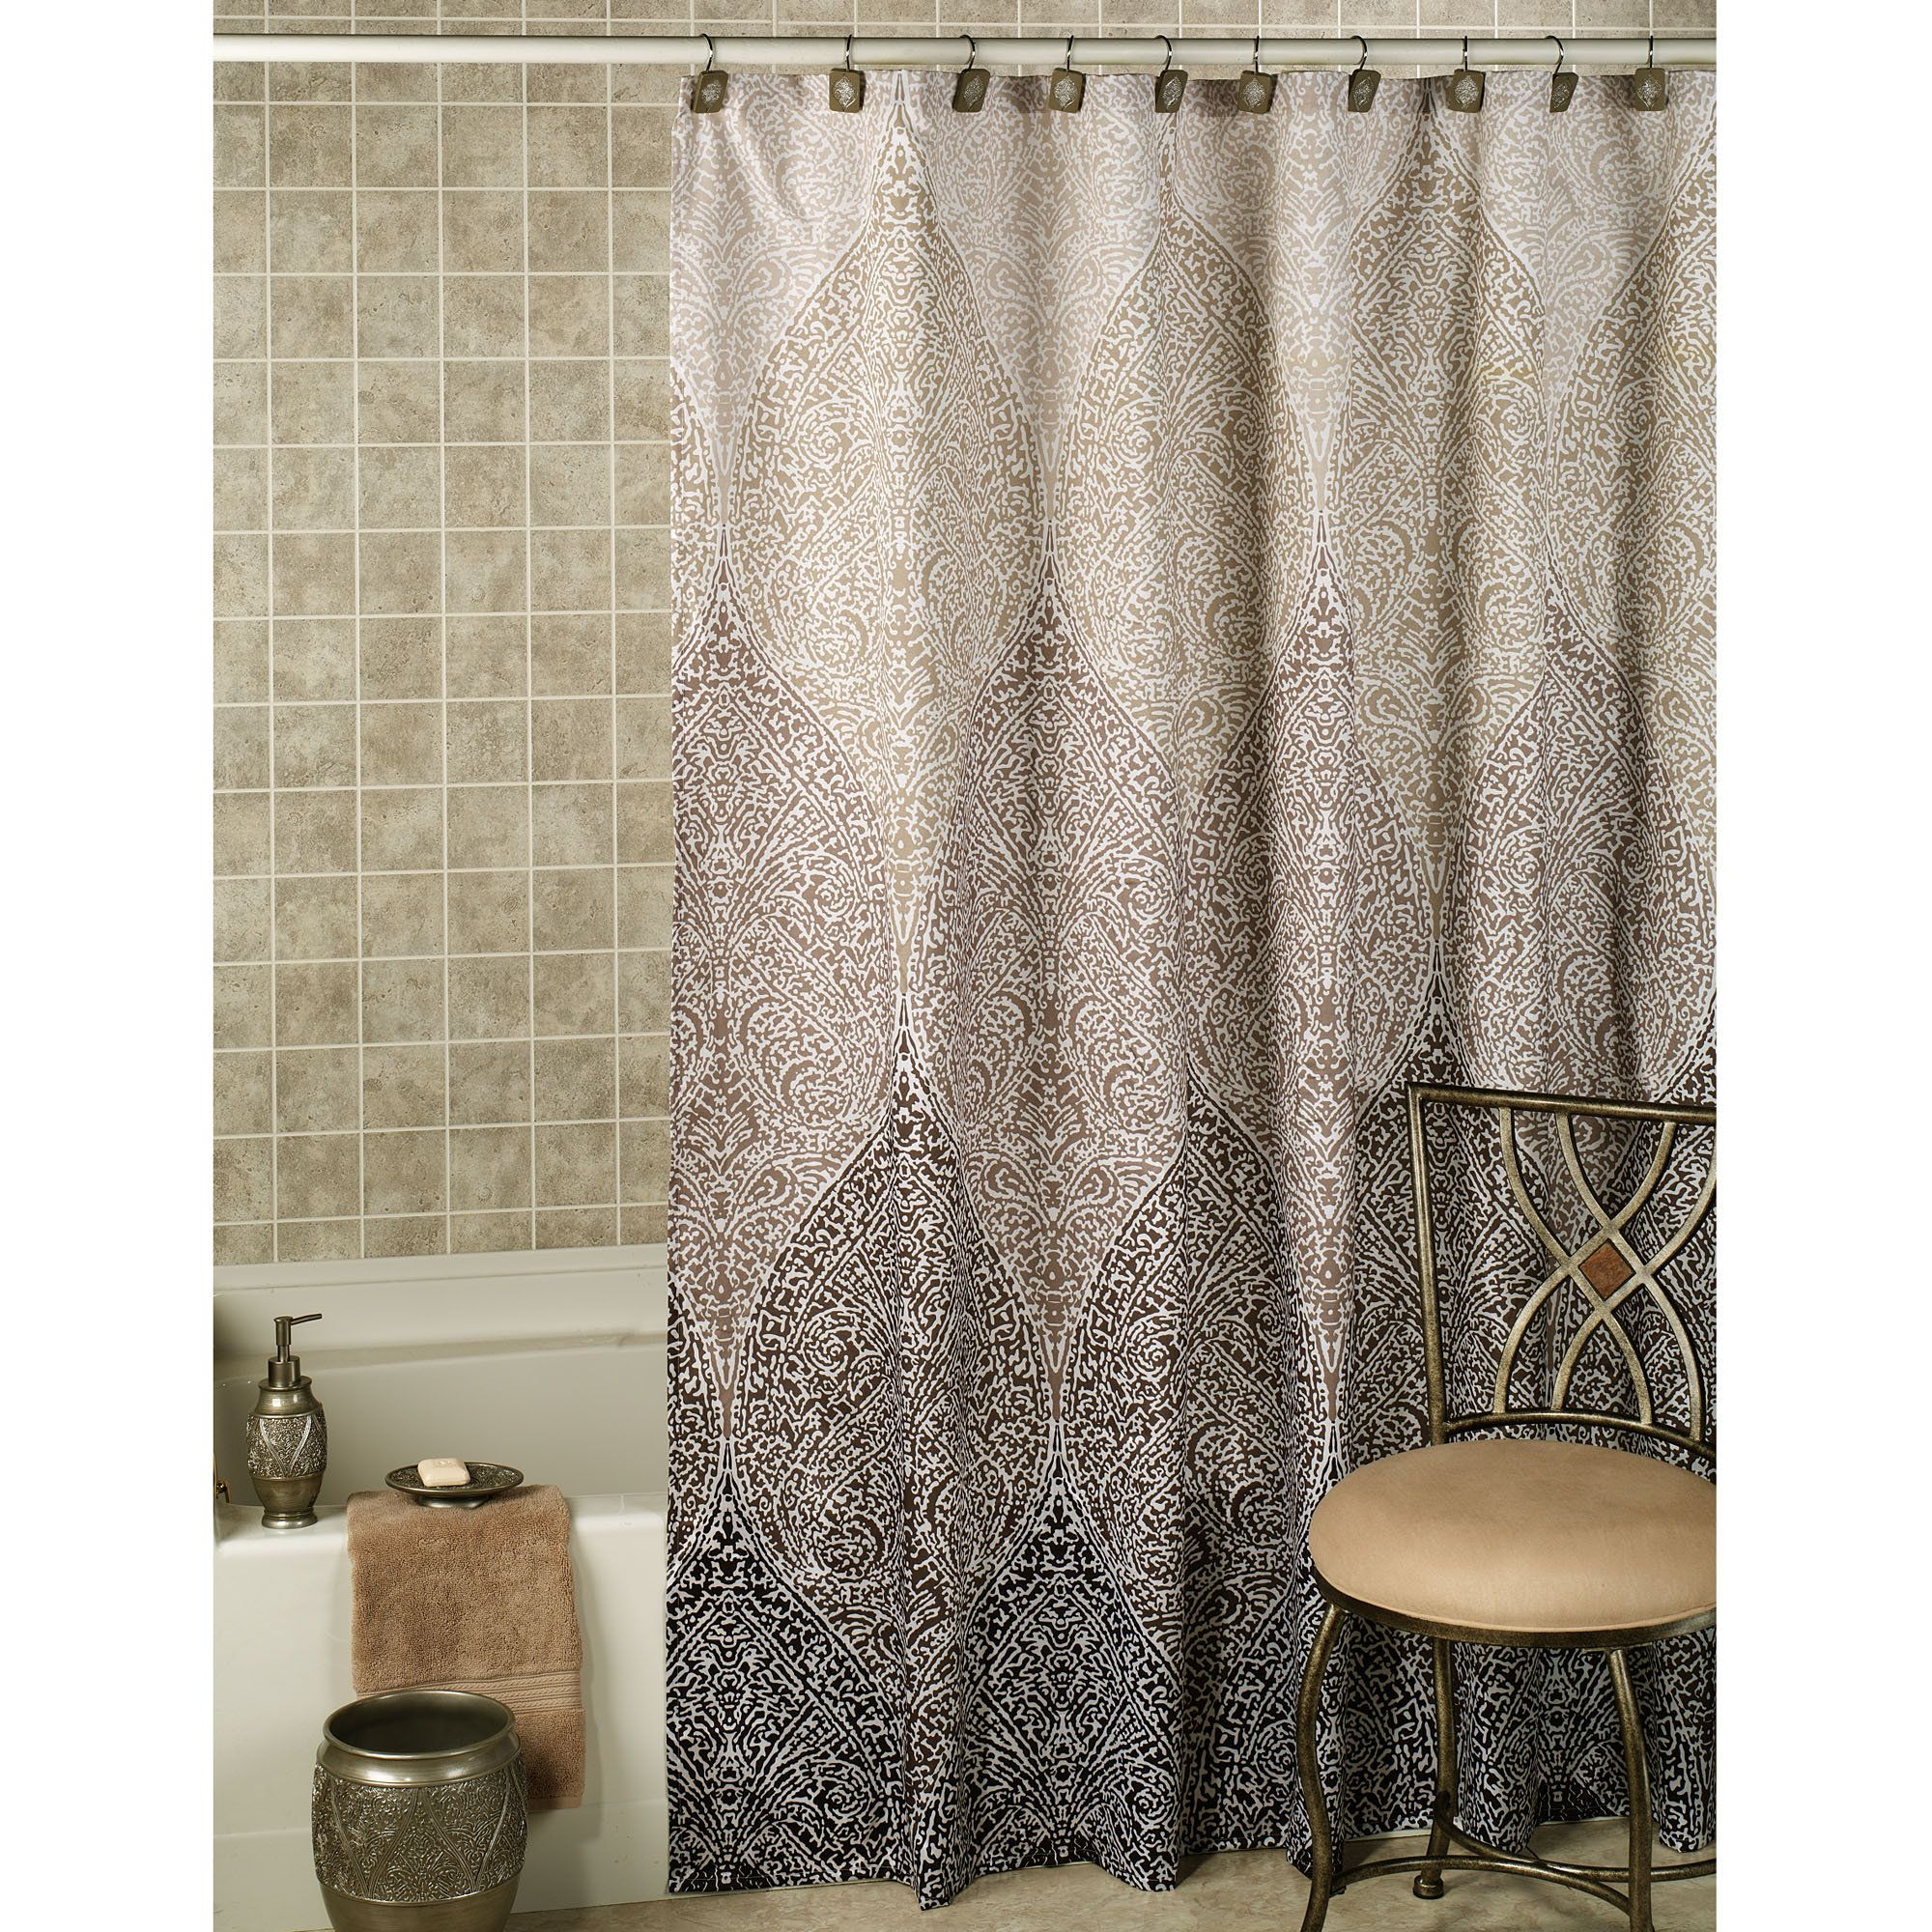 Moroccan curtains white - Casablanca Ombre Moroccan Design Shower Curtain